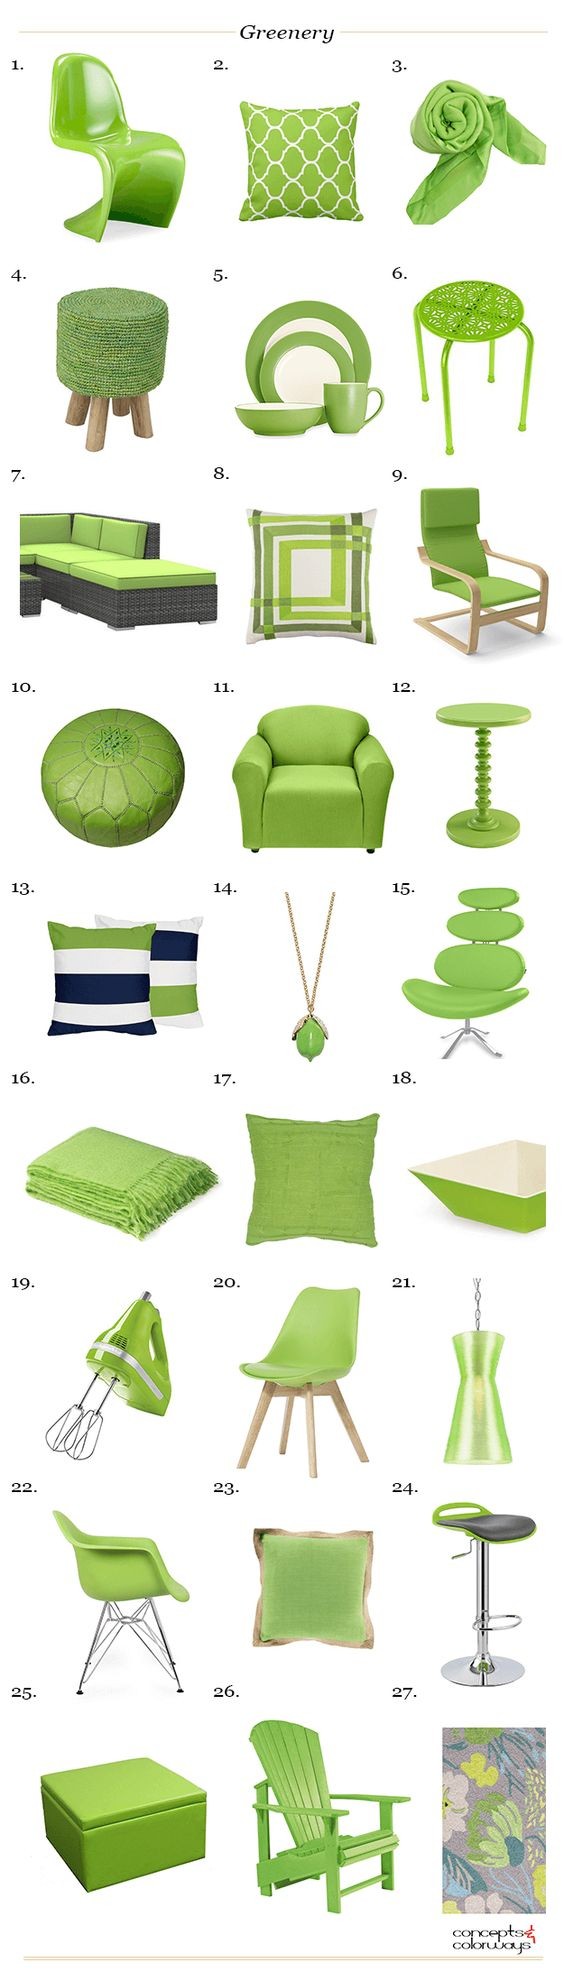 pantone greenery, interior product roundup, 2017 color trends, bright green, spring green, lime green, apple green, bright green: